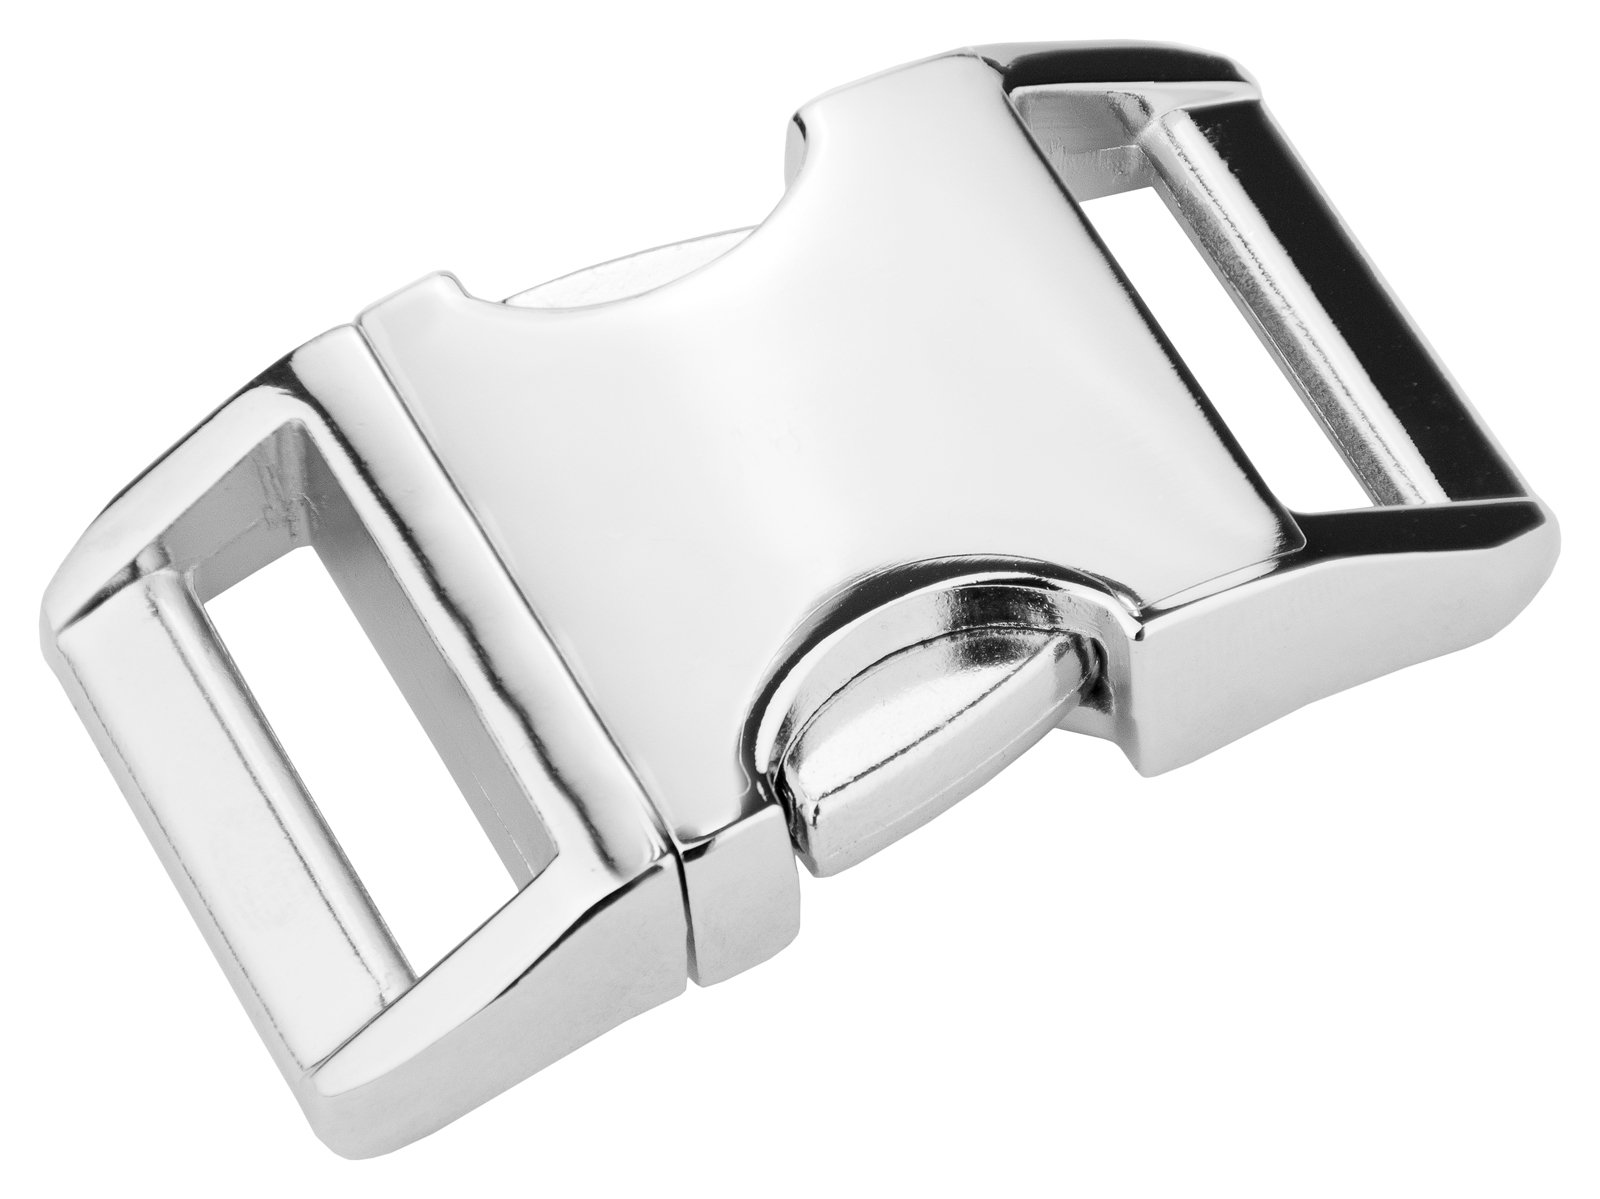 5 - 1 Inch Contoured Aluminum Side Release Buckles